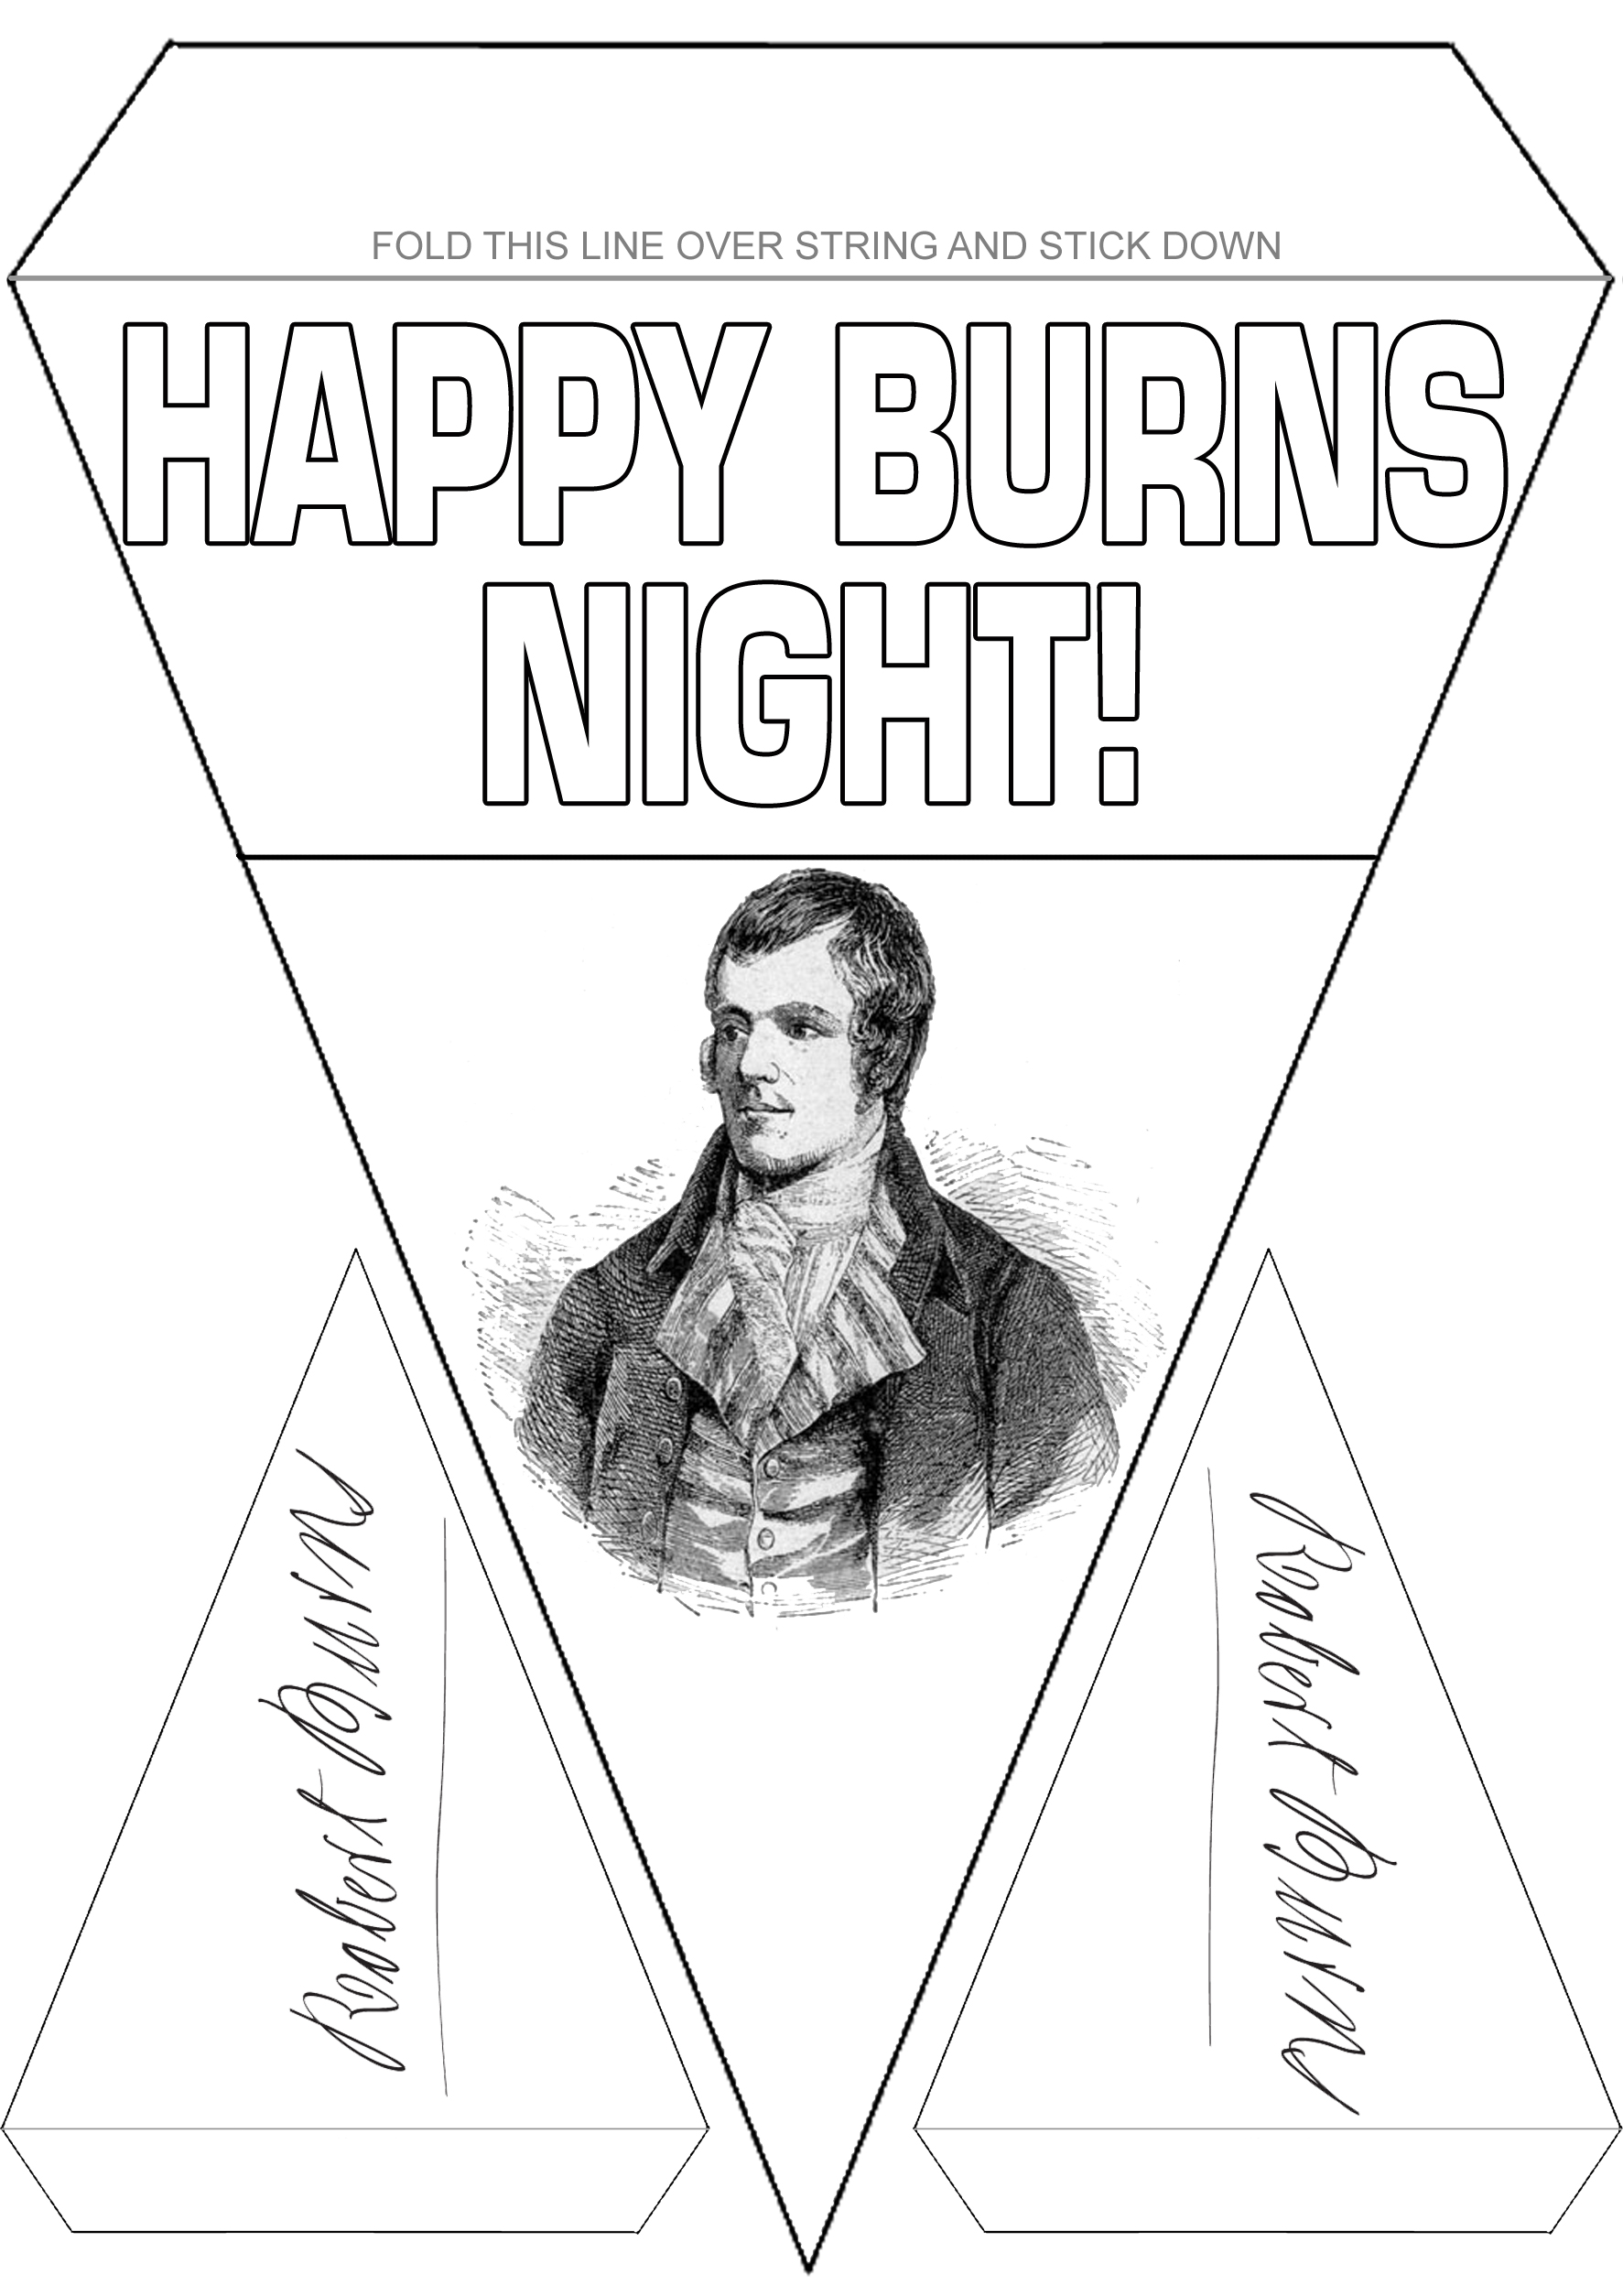 Burns Supper Decoration: Black and White Bunting